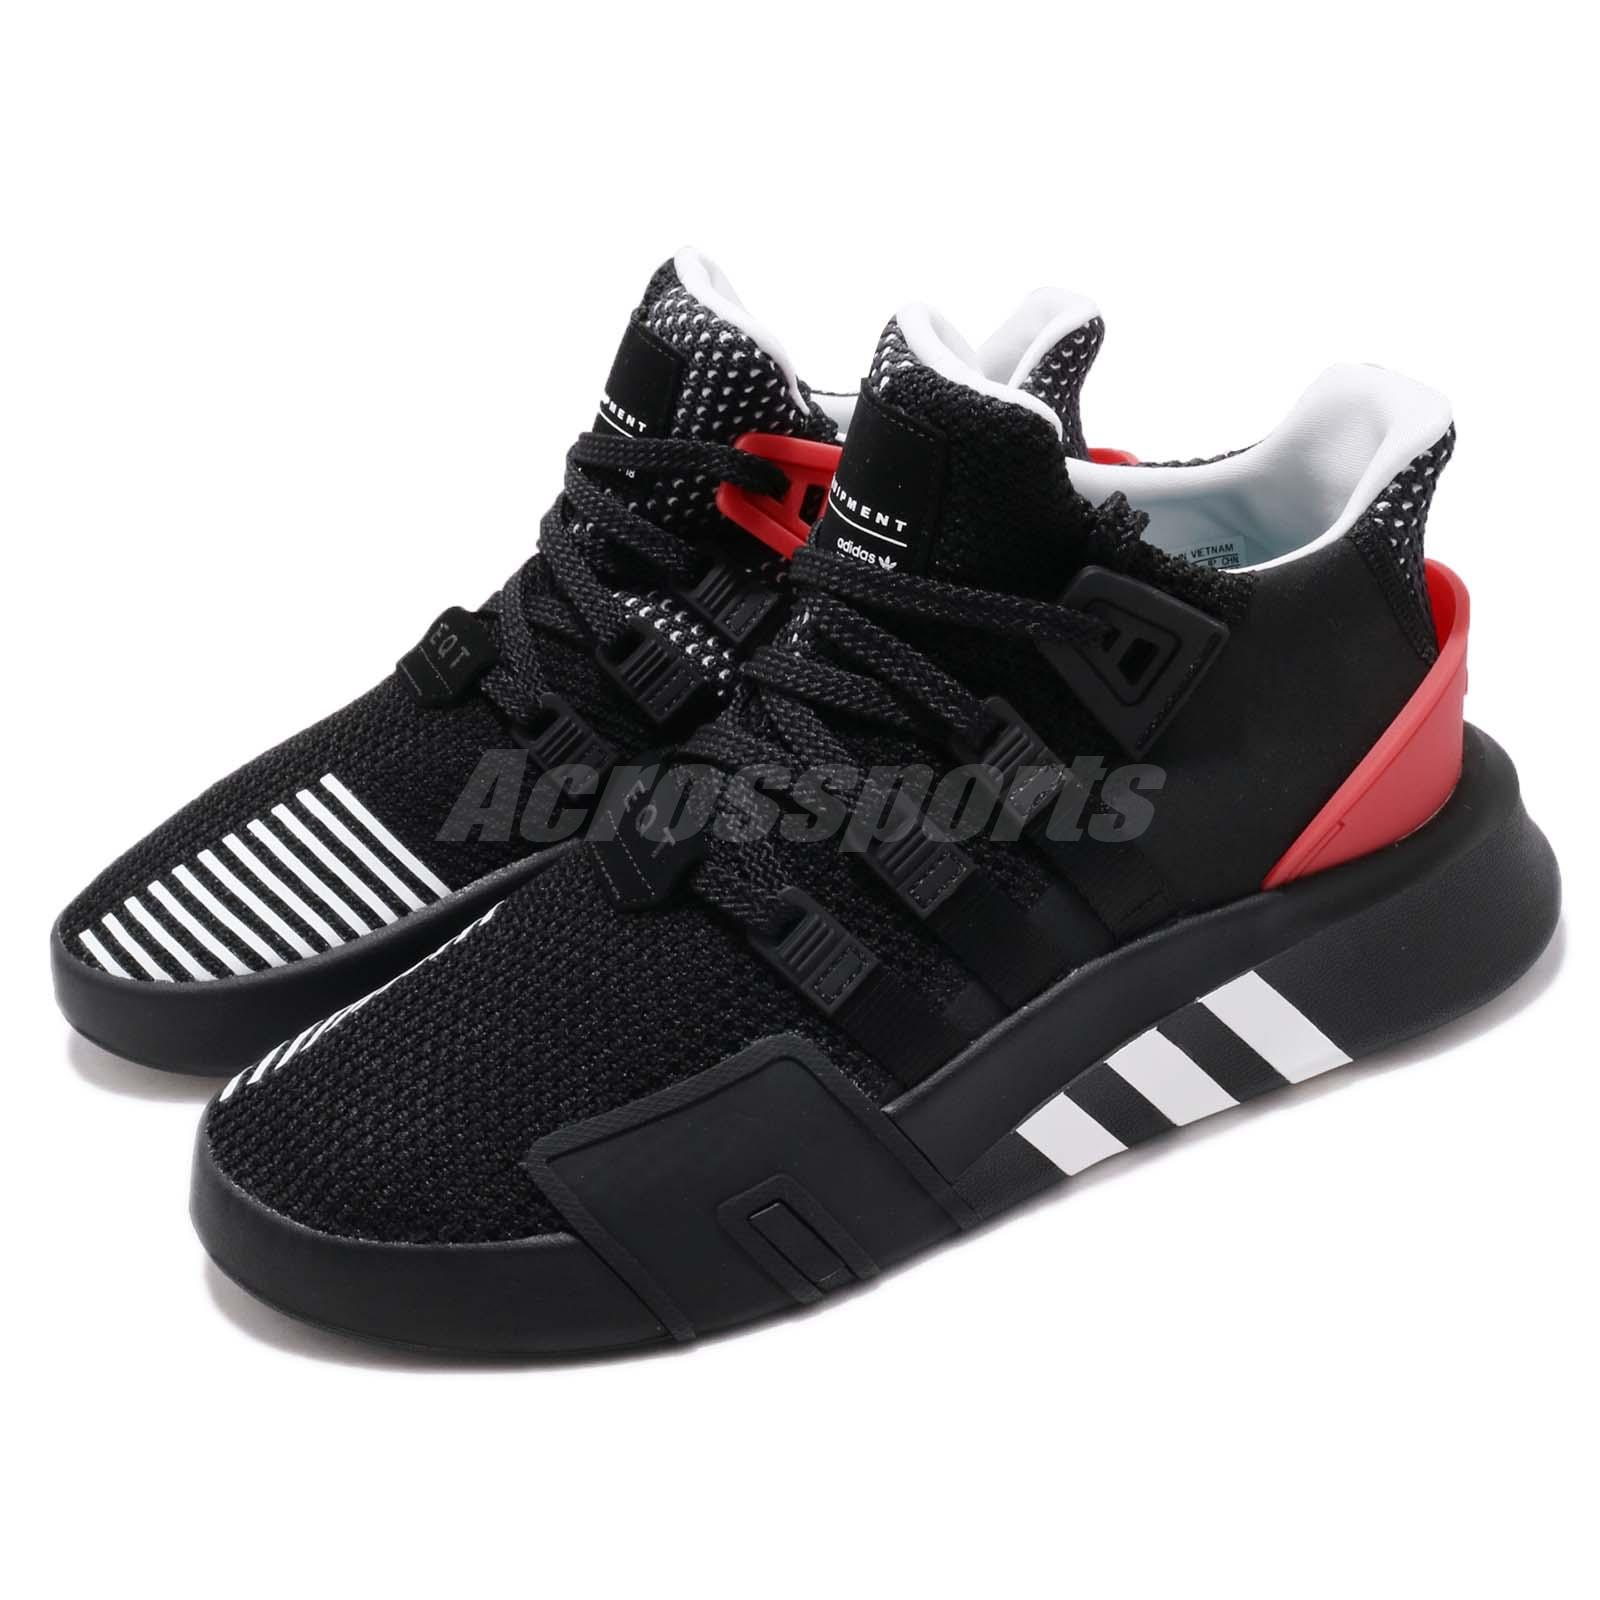 more photos 6a339 3140d Details about adidas Originals EQT Bask ADV Black White Hi-Res Red Men  Running Shoes AQ1013